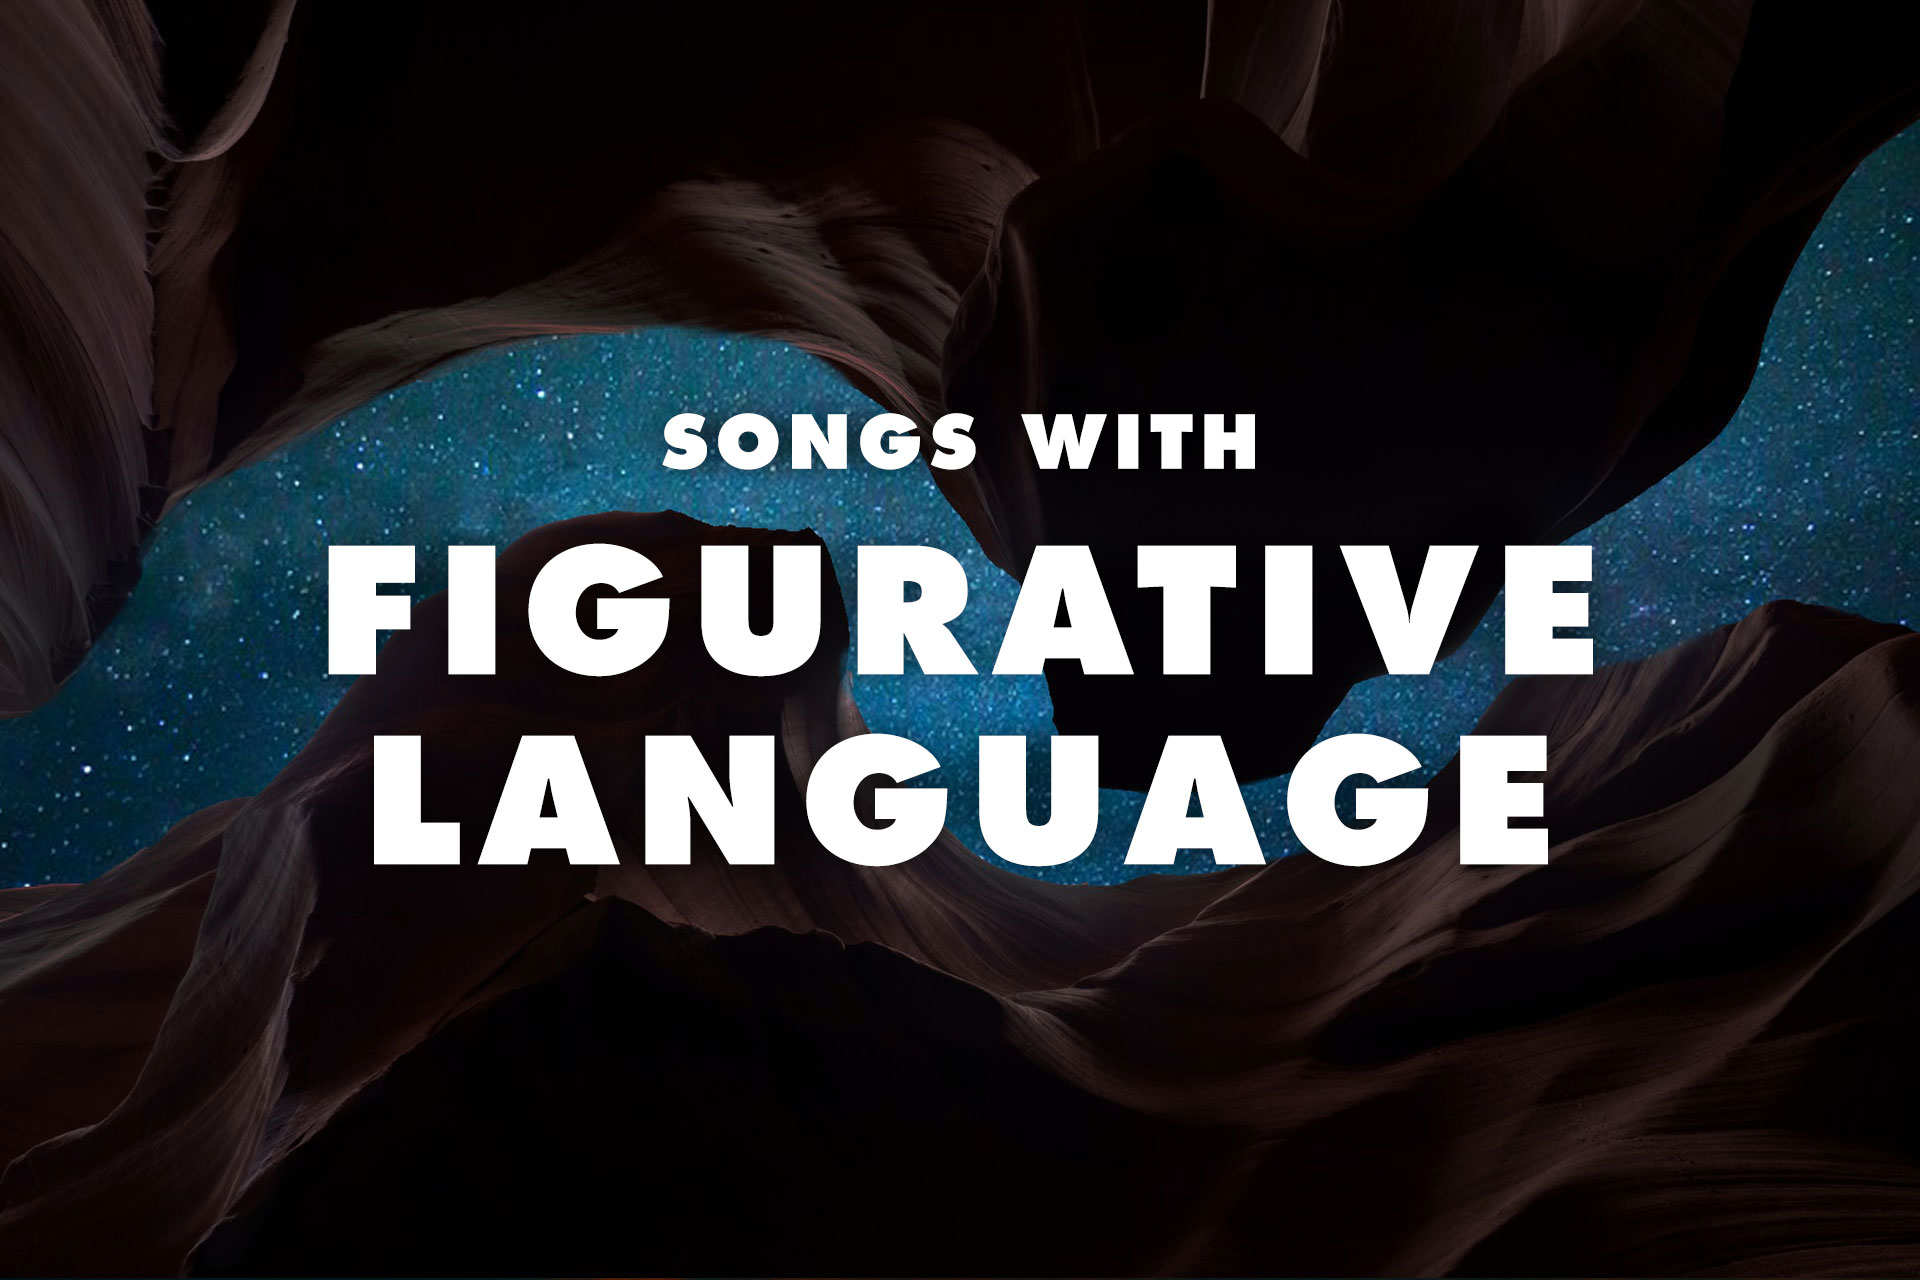 20 Songs with Figurative Language